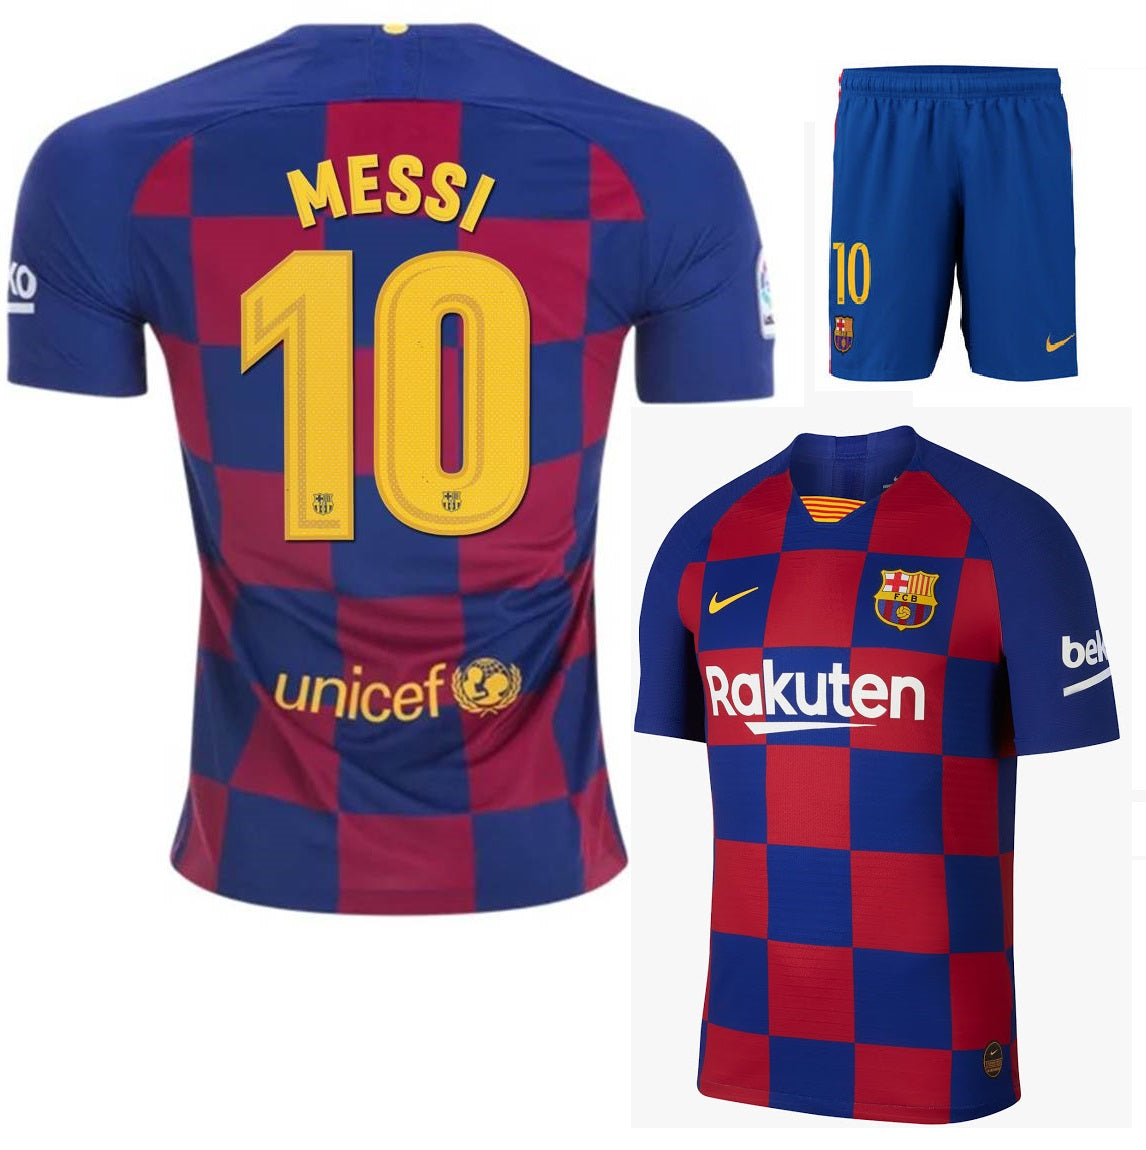 the latest f5400 cbd6b Original Messi Barcelona Premium Home Jersey & Shorts [Optional] 2019/20